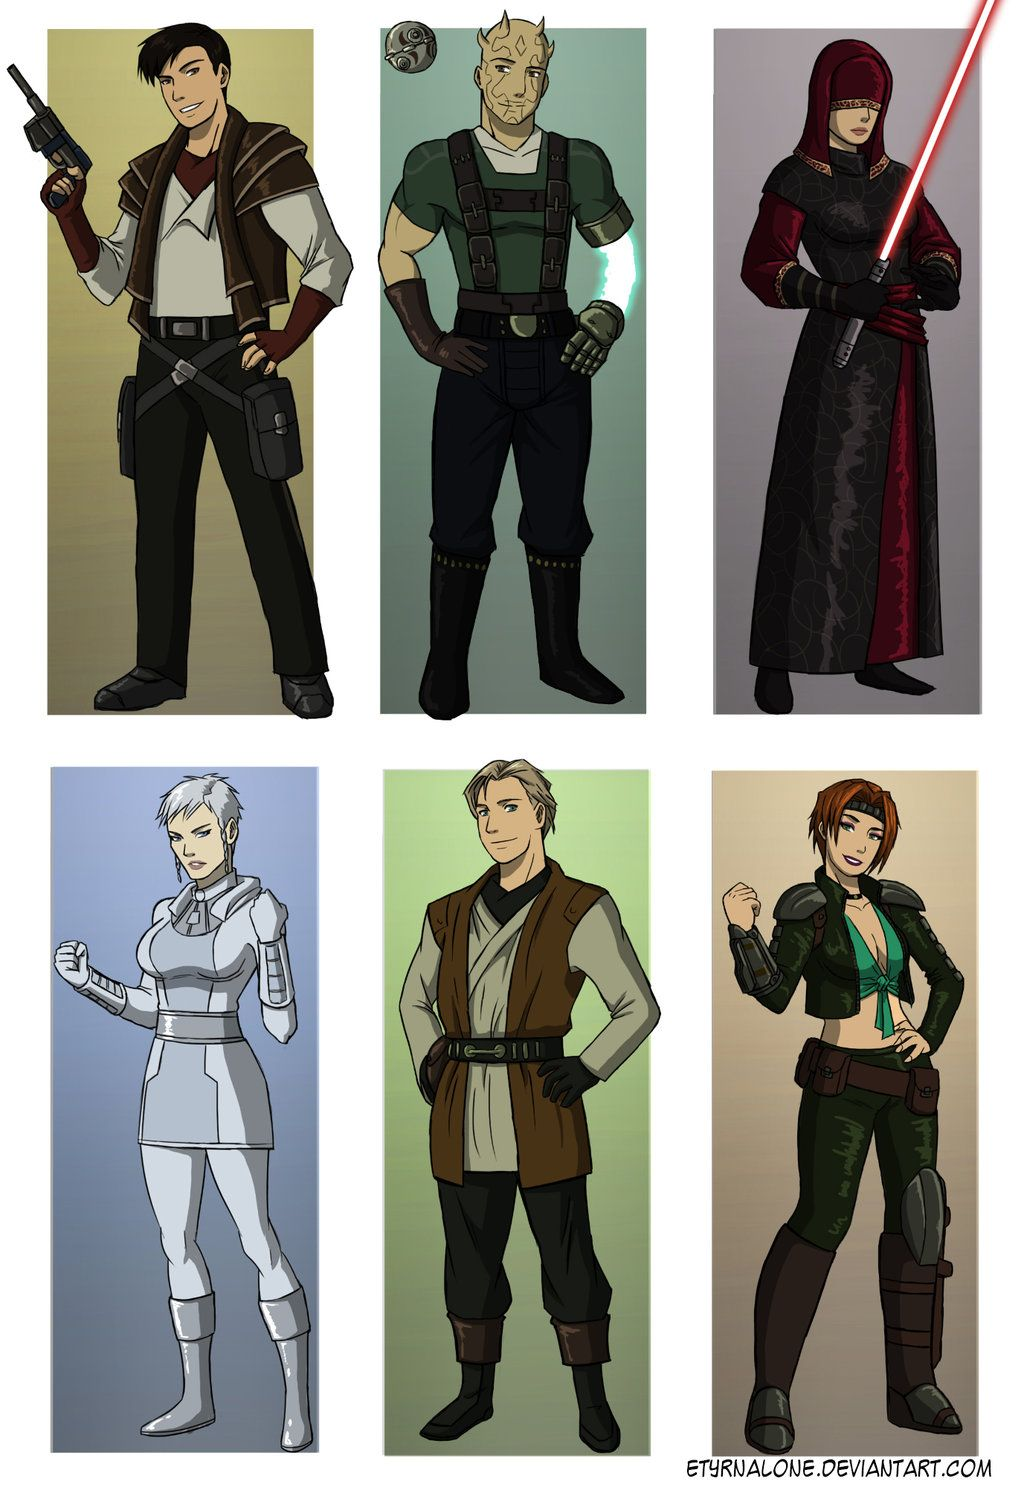 Star Wars The Old Republic 2 : republic, Characters